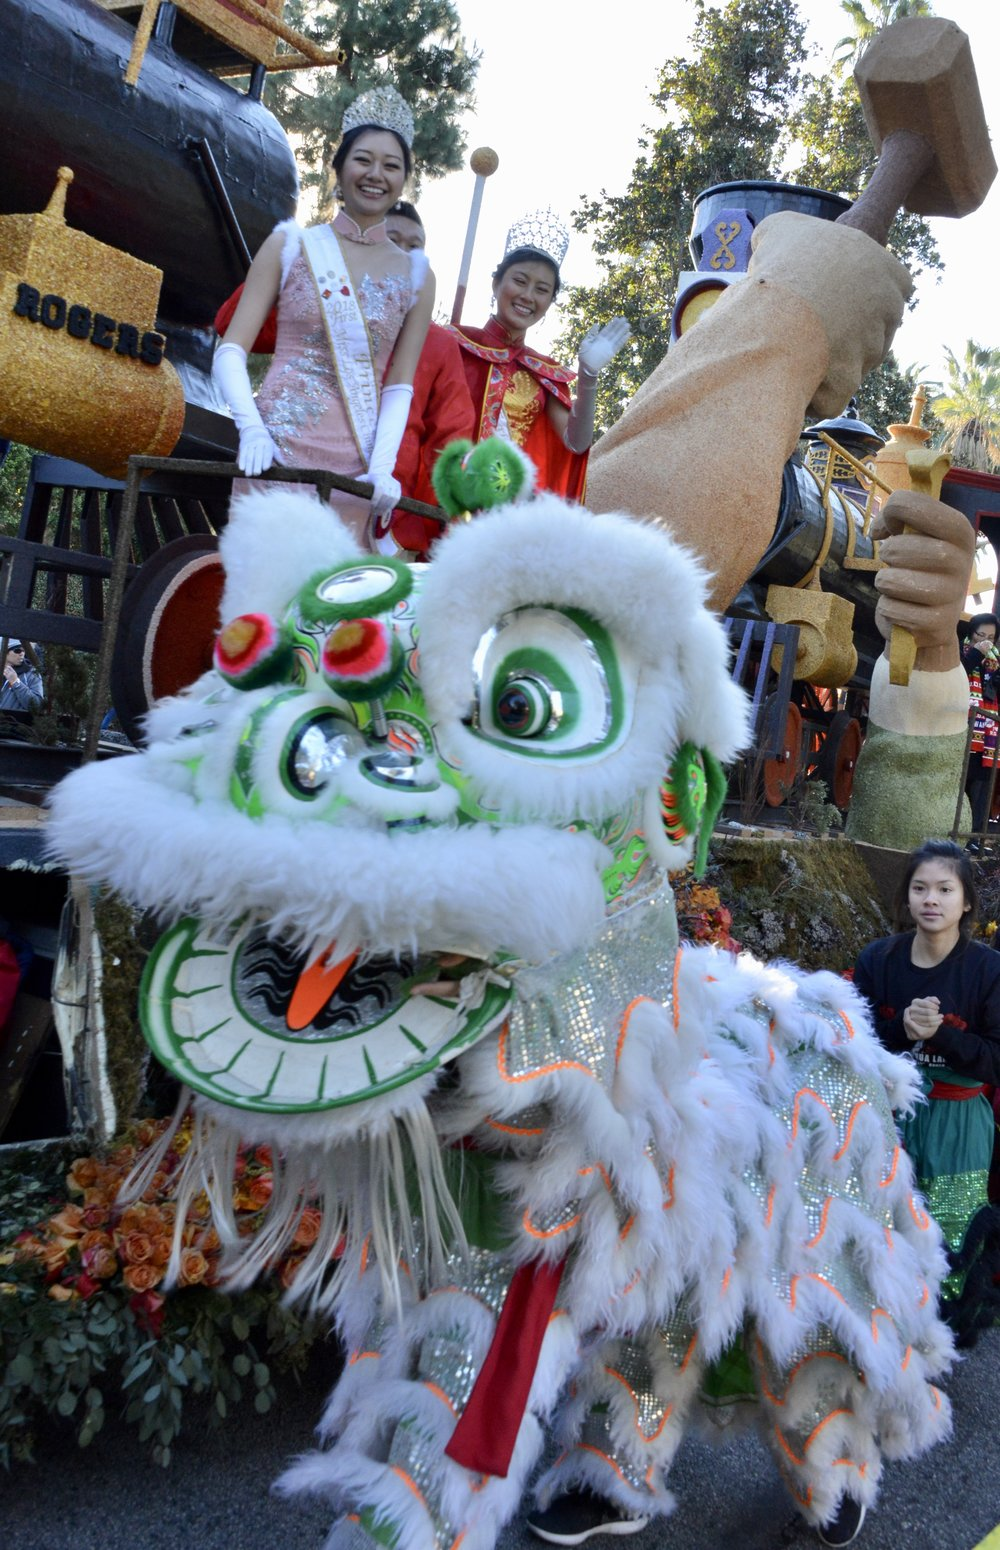 Southern Wind Lion Dance troupe performed before, during, and after the Rose Parade!